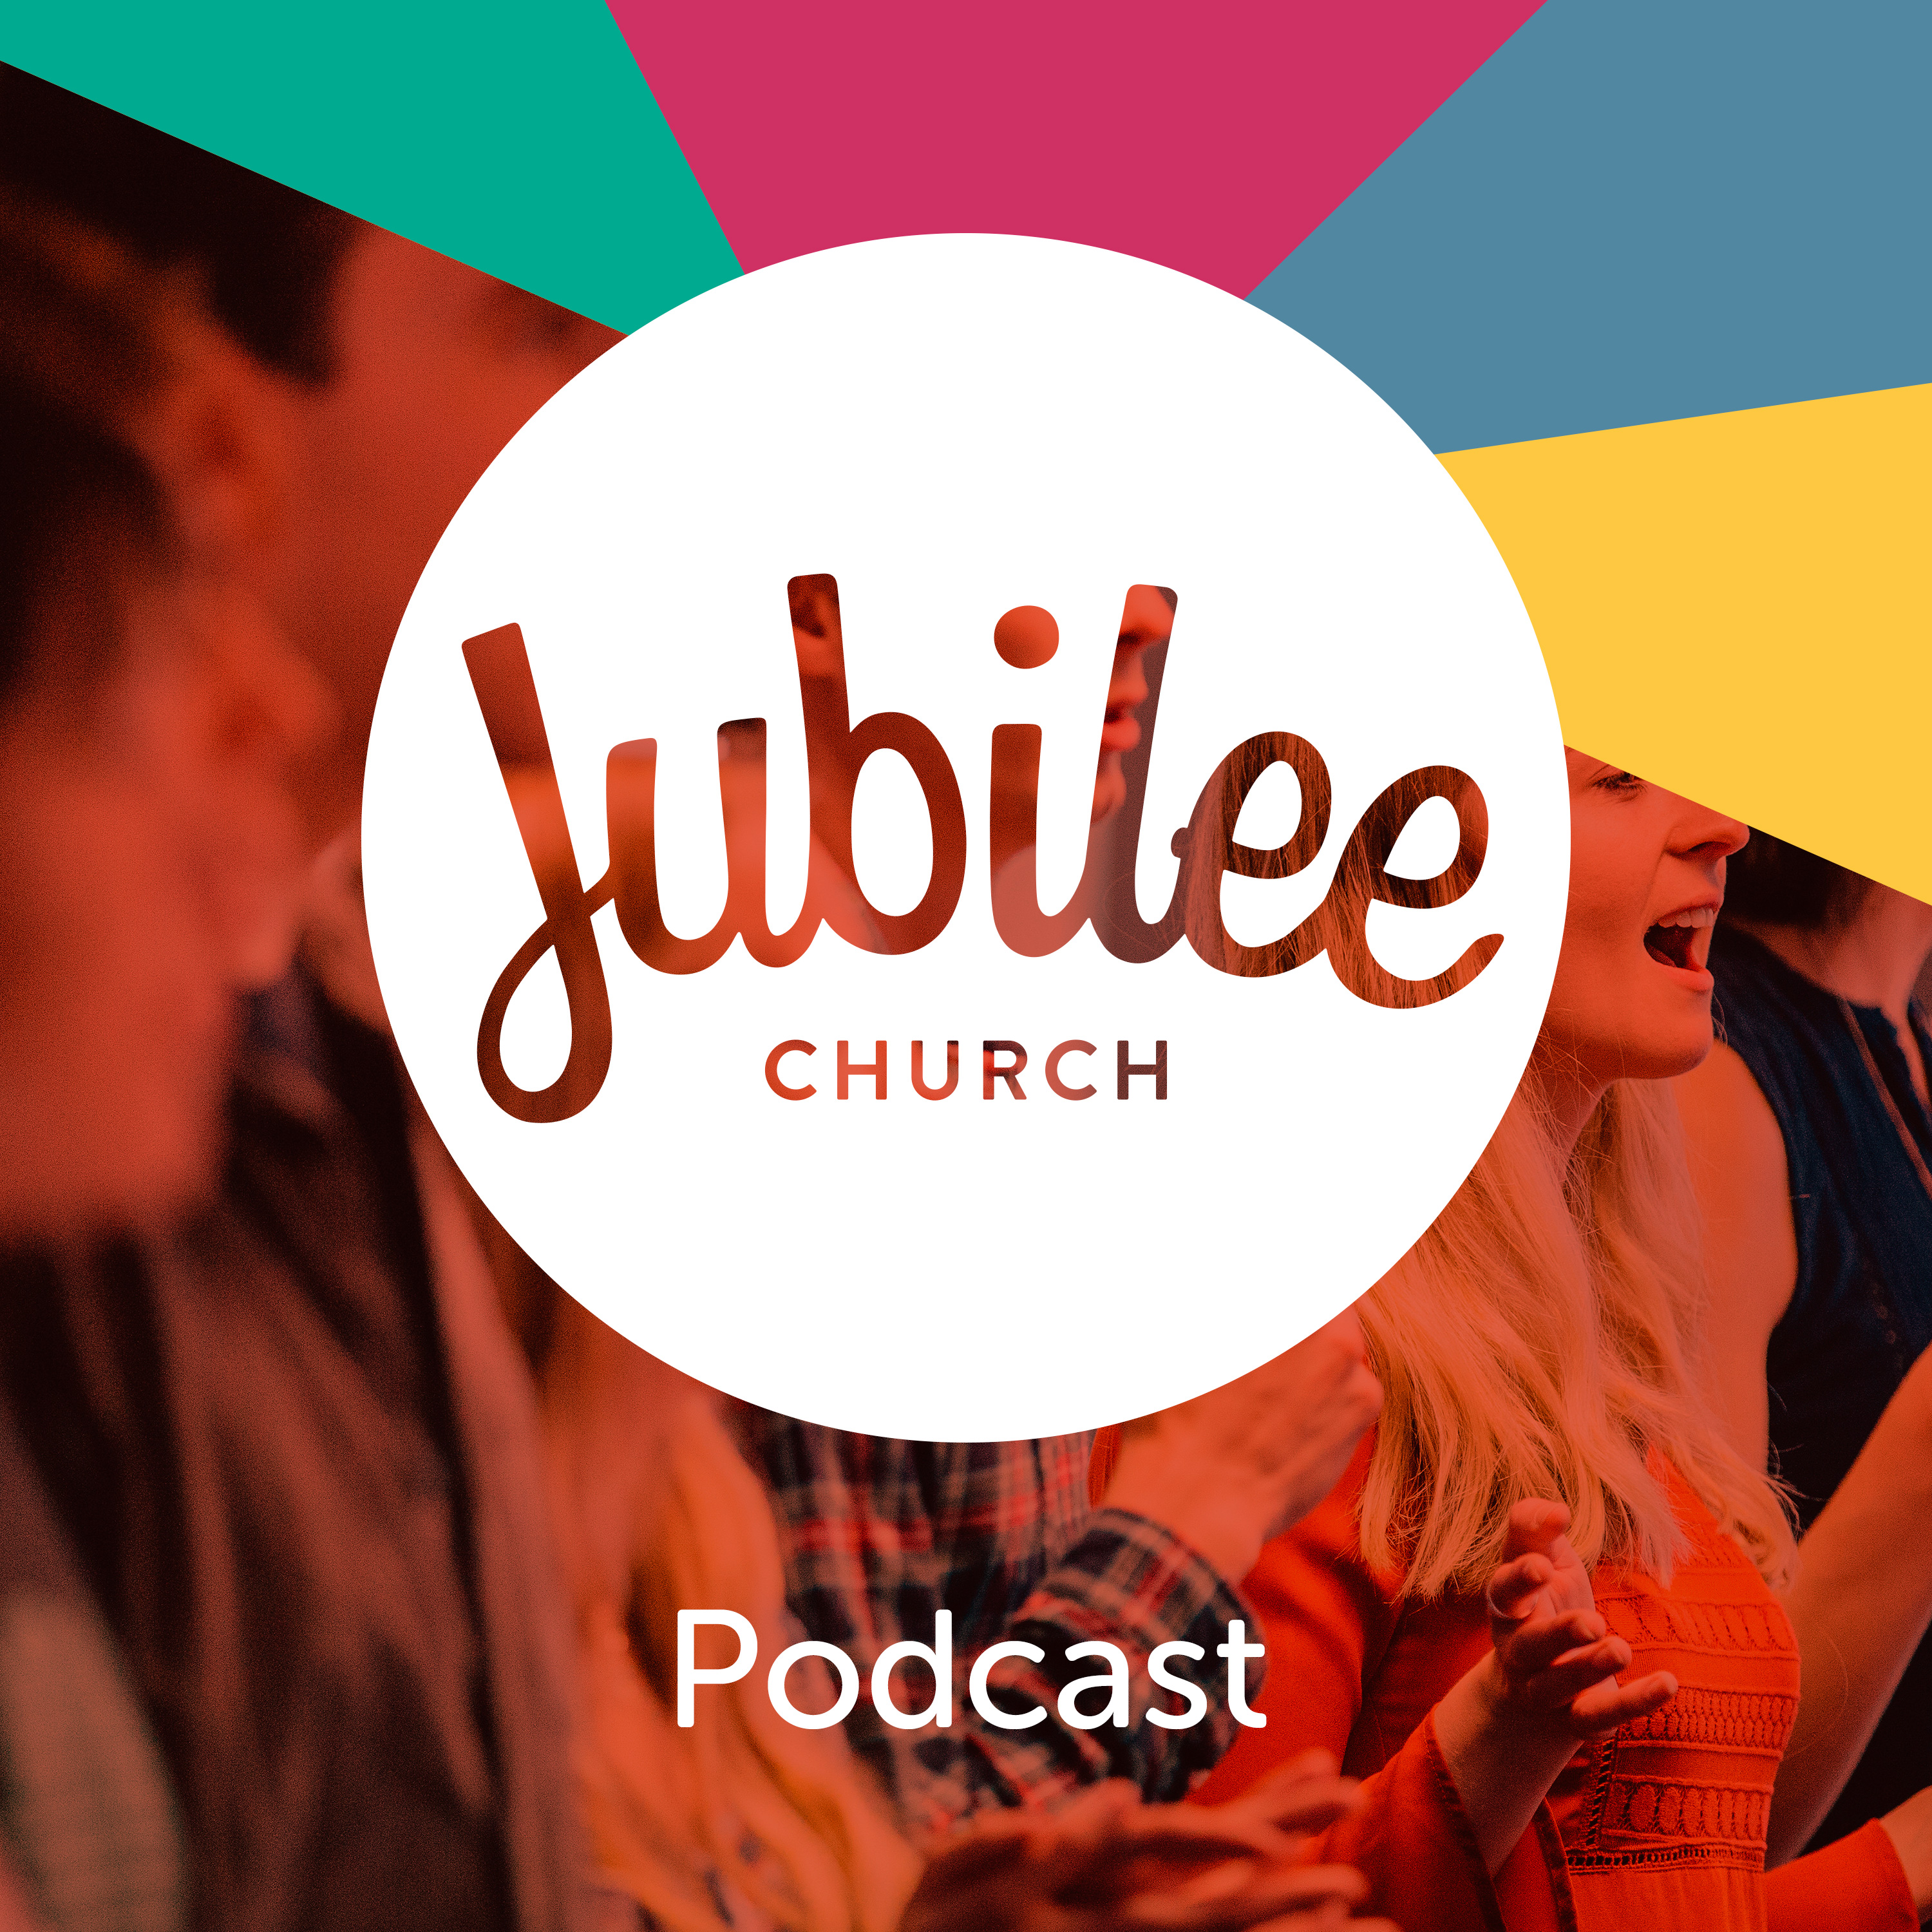 Jubilee Church Solihull Podcast by Jubilee Church Solihull on Apple